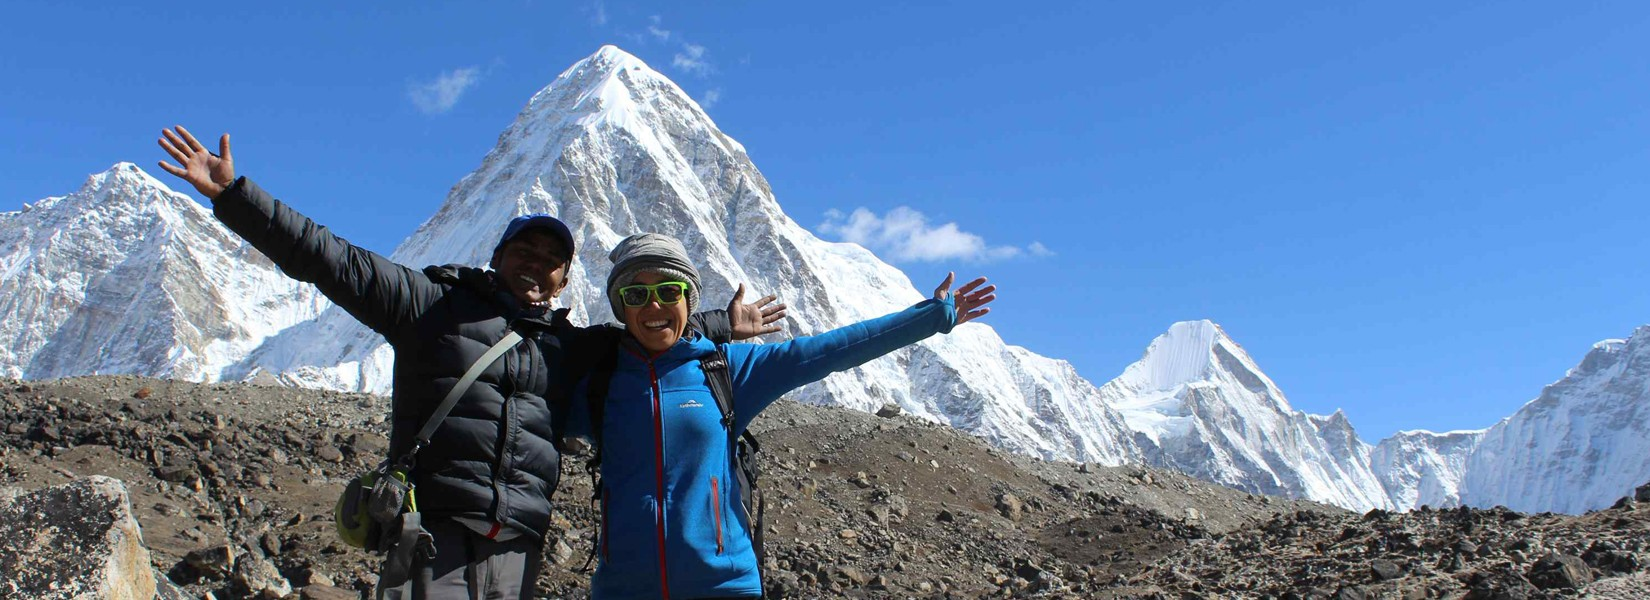 Journey to Everest Base Camp: Much more than simply an Adventure